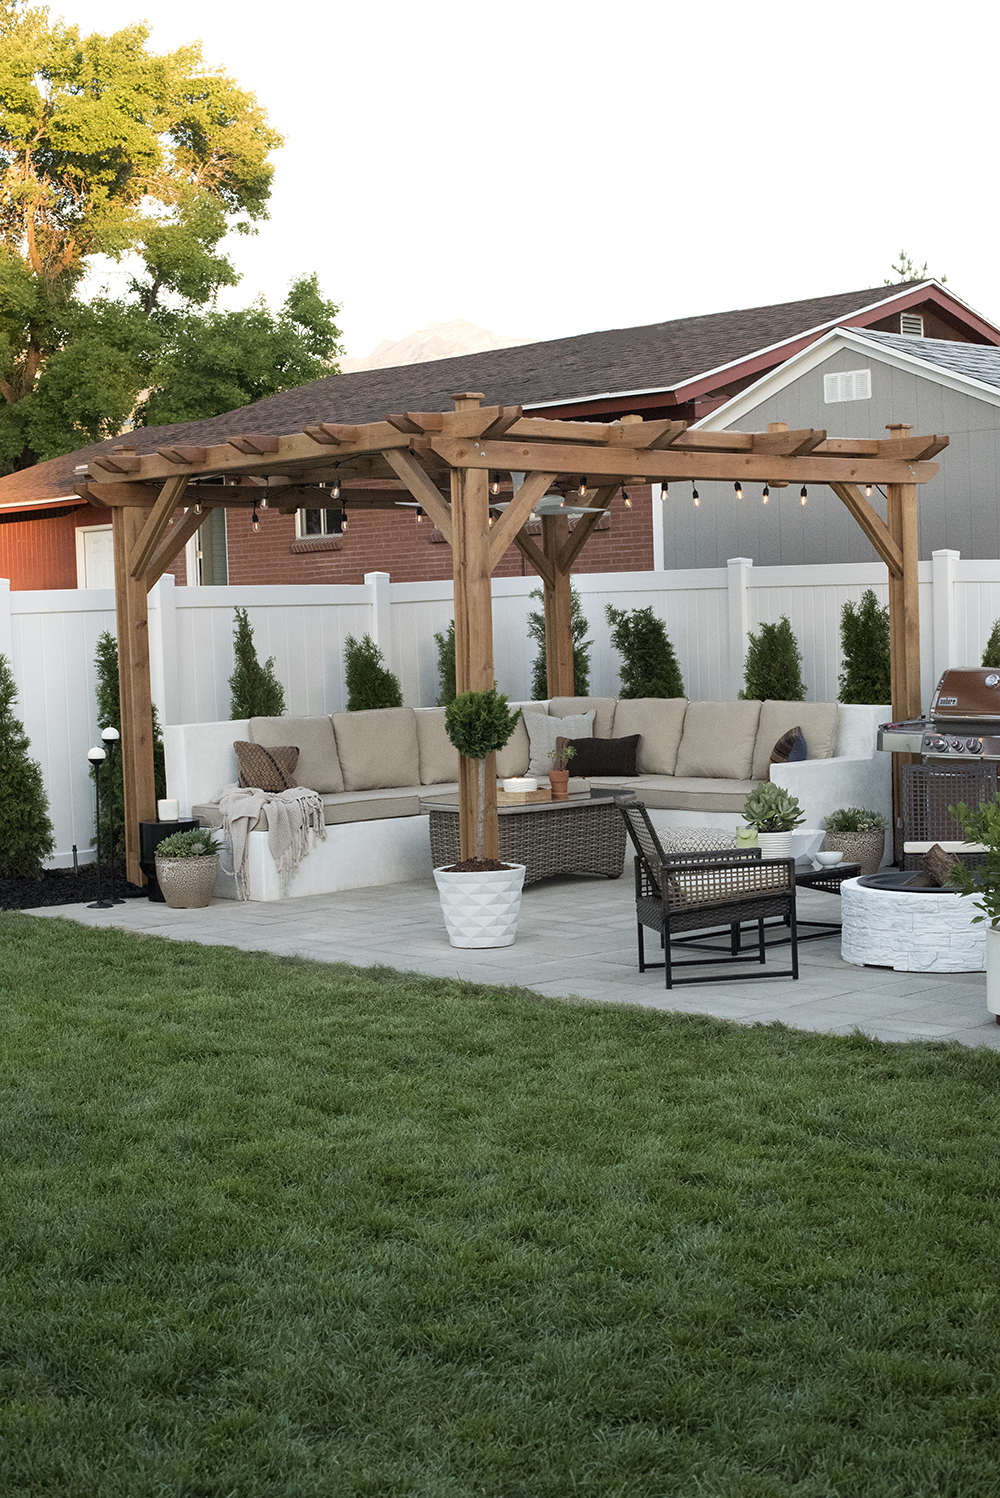 Pergola and Outdoor Entertaining Space